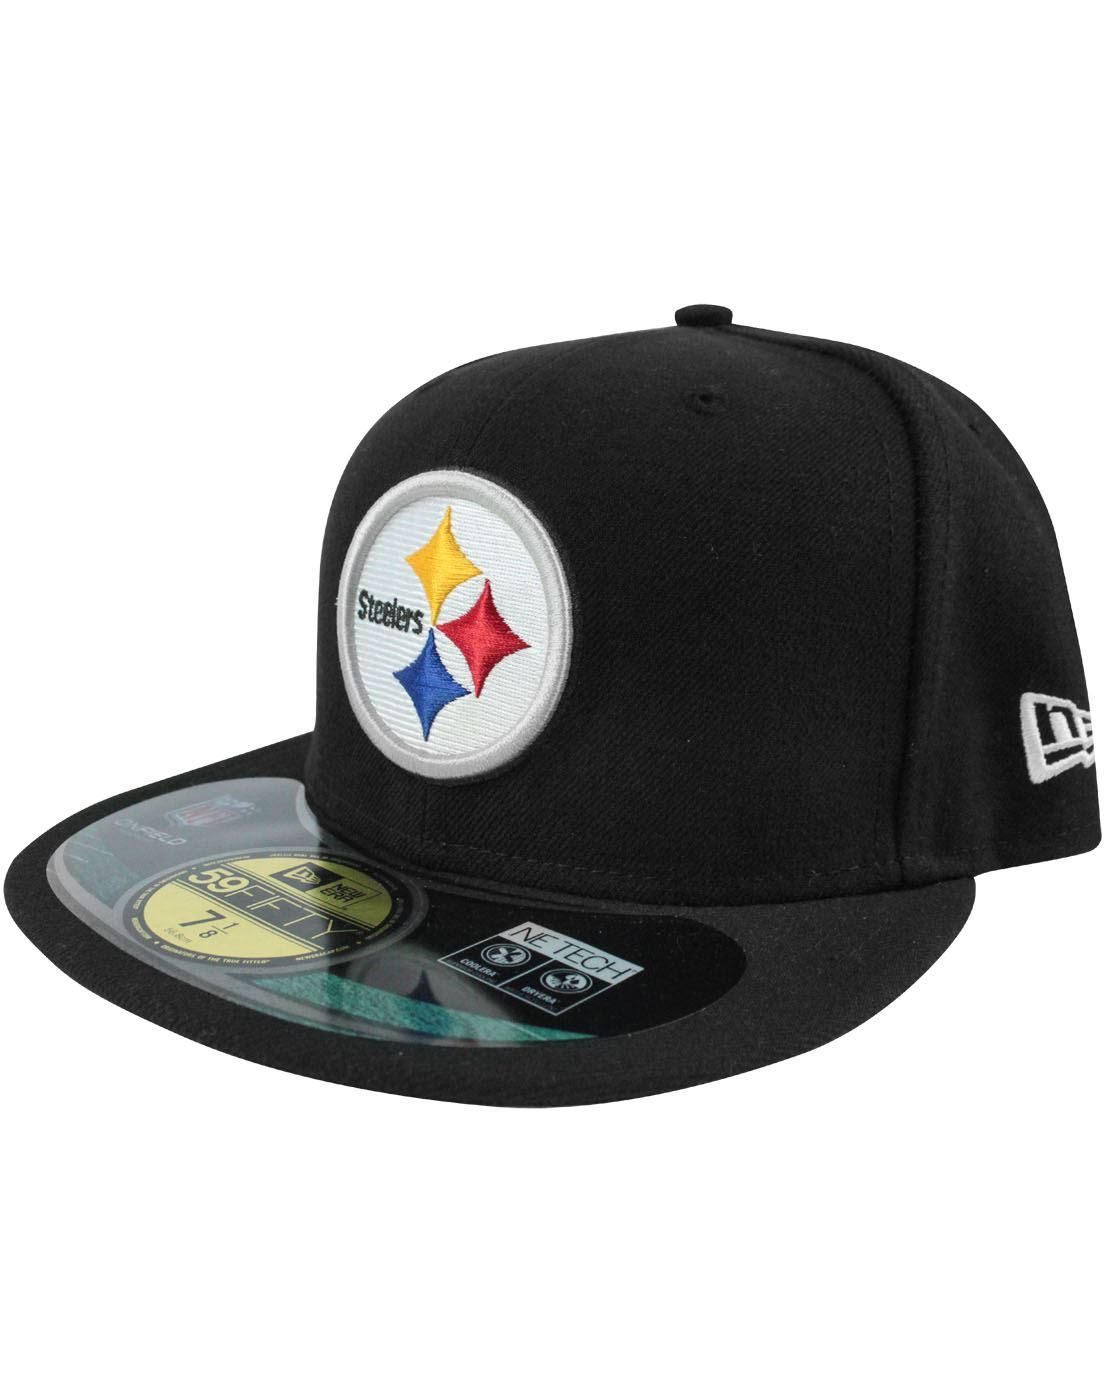 dcb4a5b04 New Era 59Fifty NFL Pittsburgh Steelers Cap – Vanilla Underground